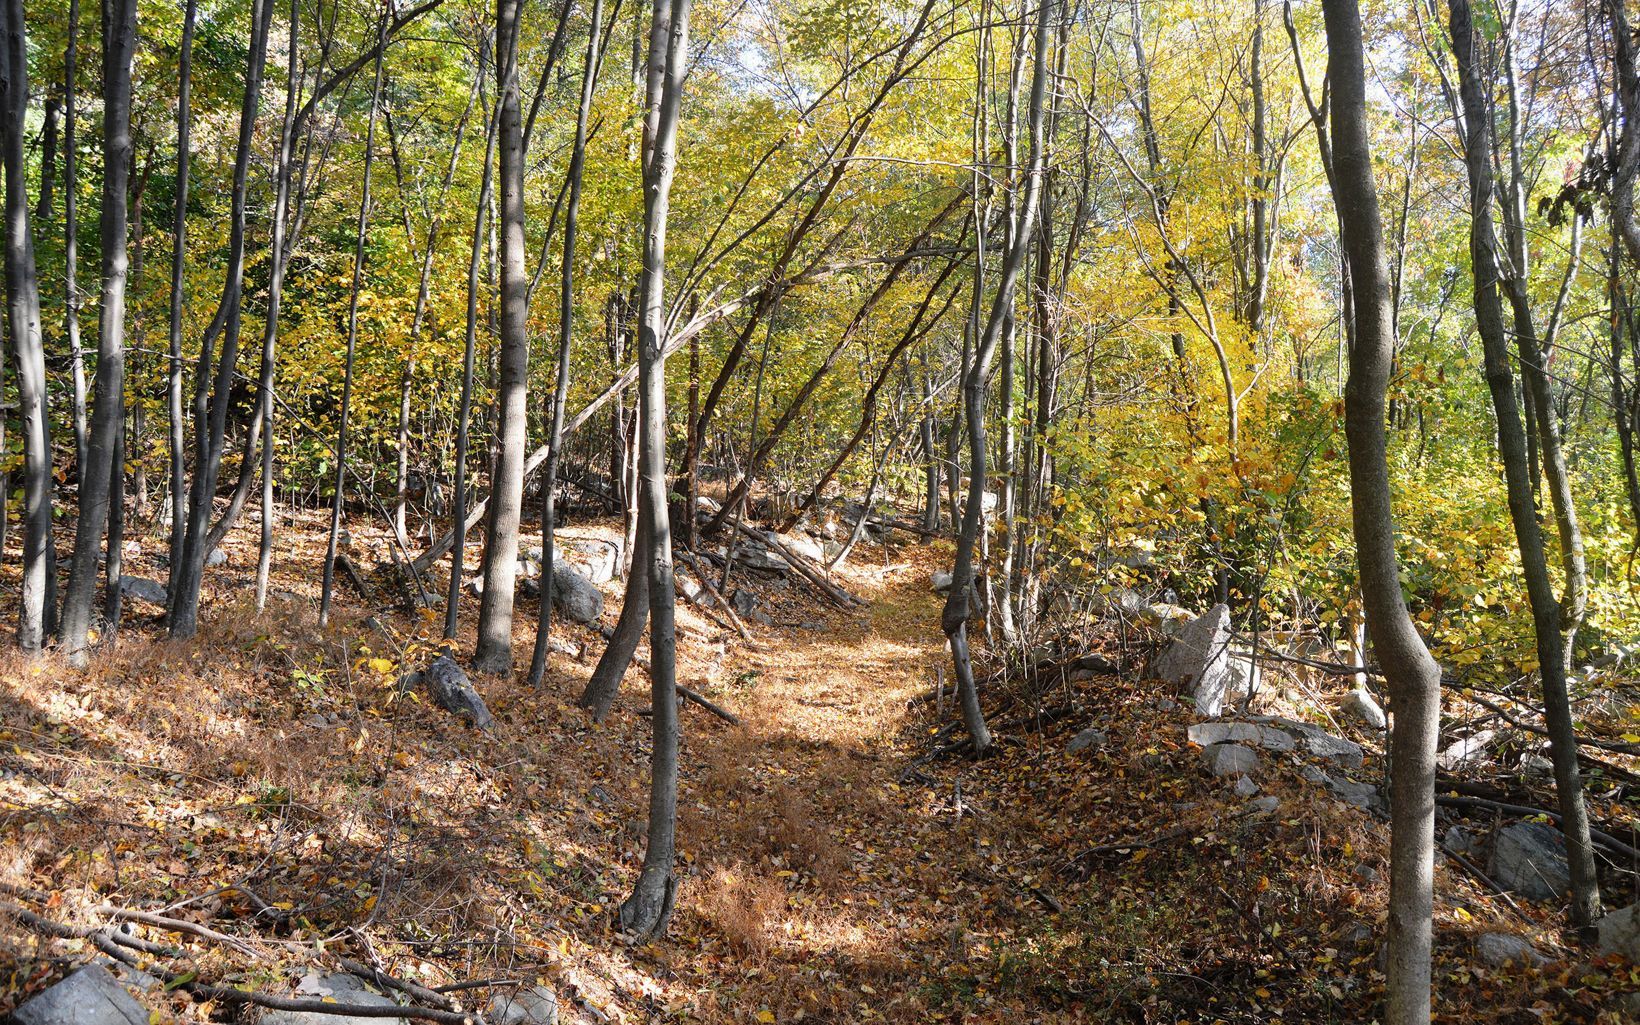 Trees shade a leafy trail leading through the Cove Mountain Preserve.